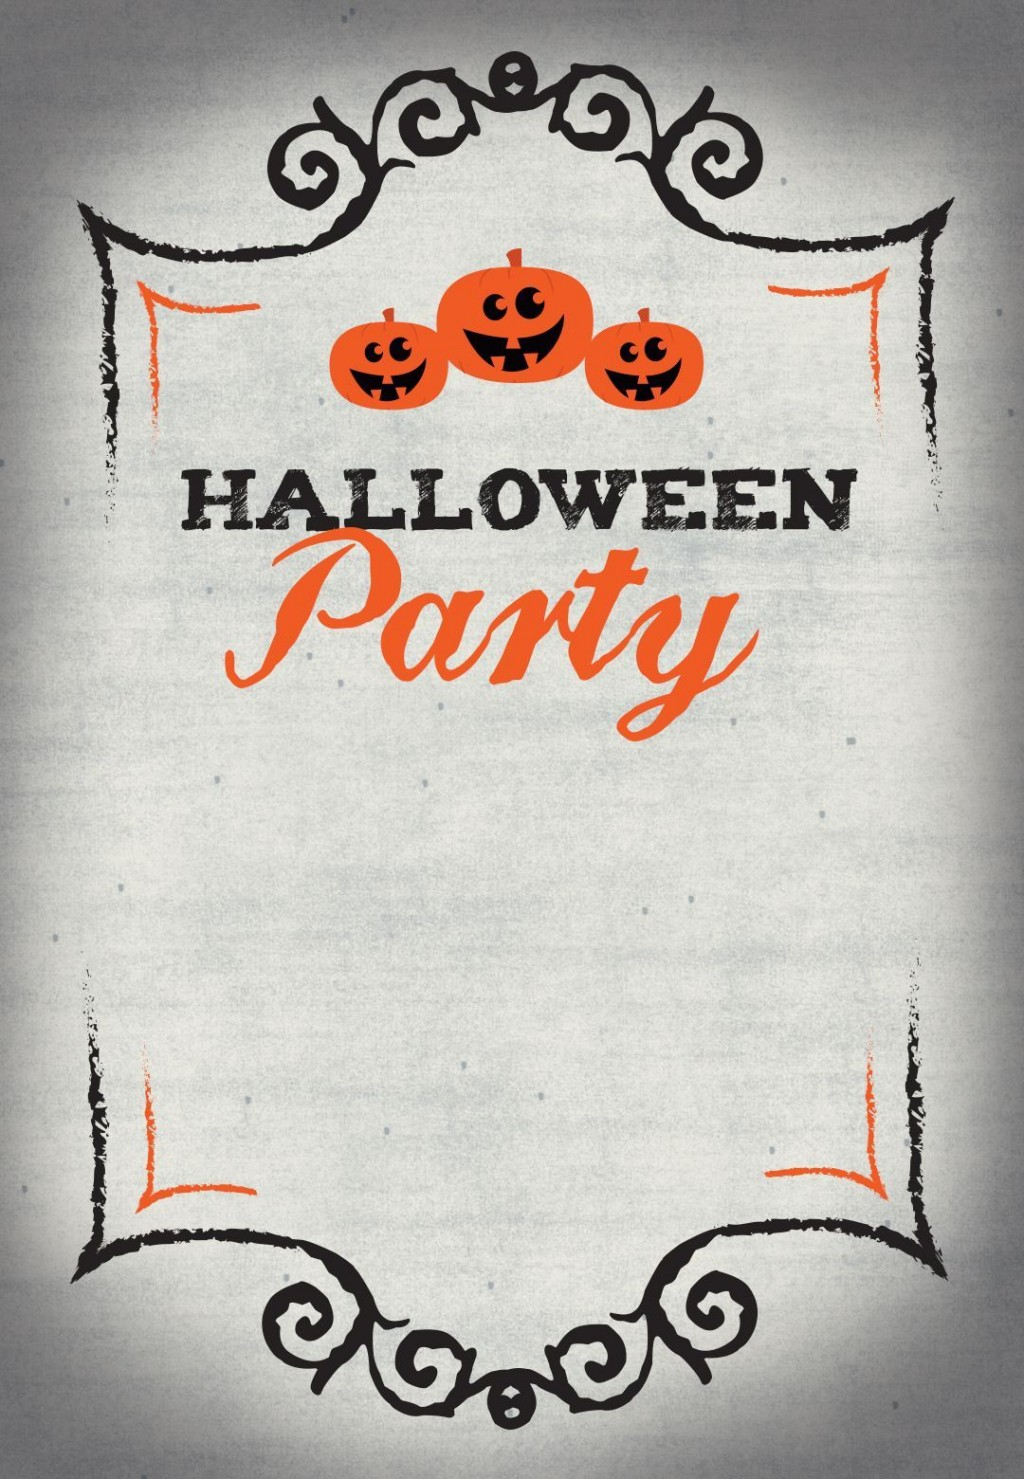 005 Unforgettable Halloween Party Invitation Template Concept  Templates Scary SpookyLarge